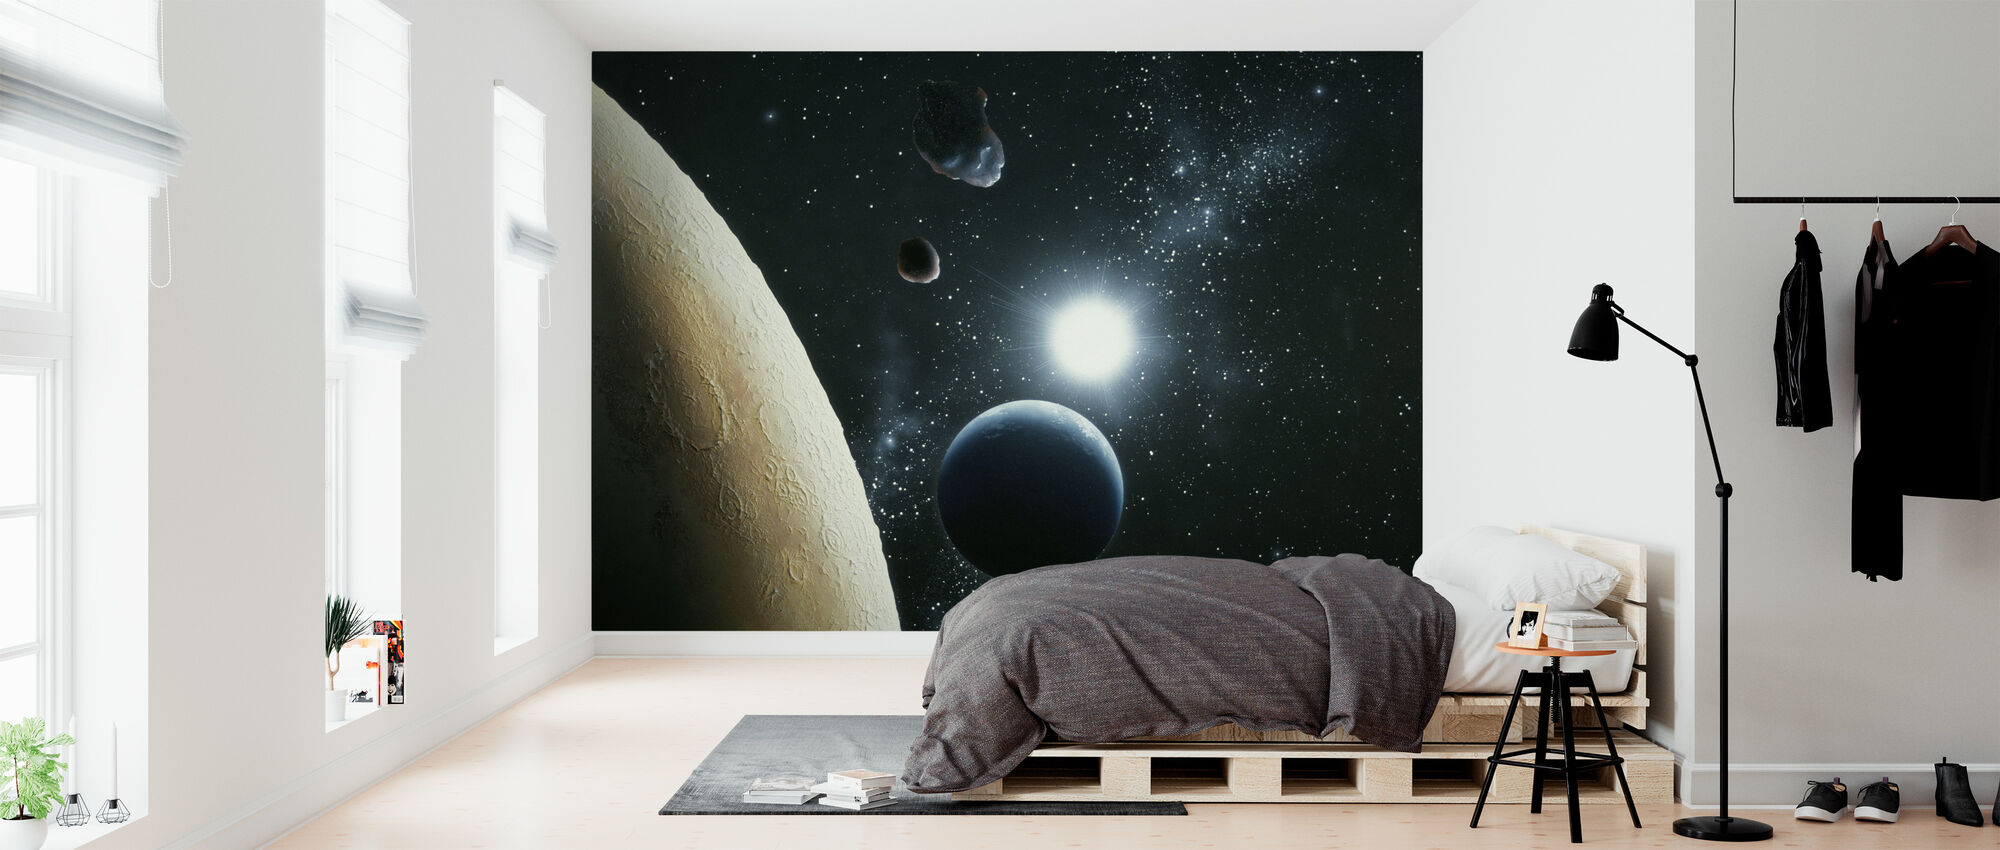 The Moon and Earth - Wallpaper - Bedroom